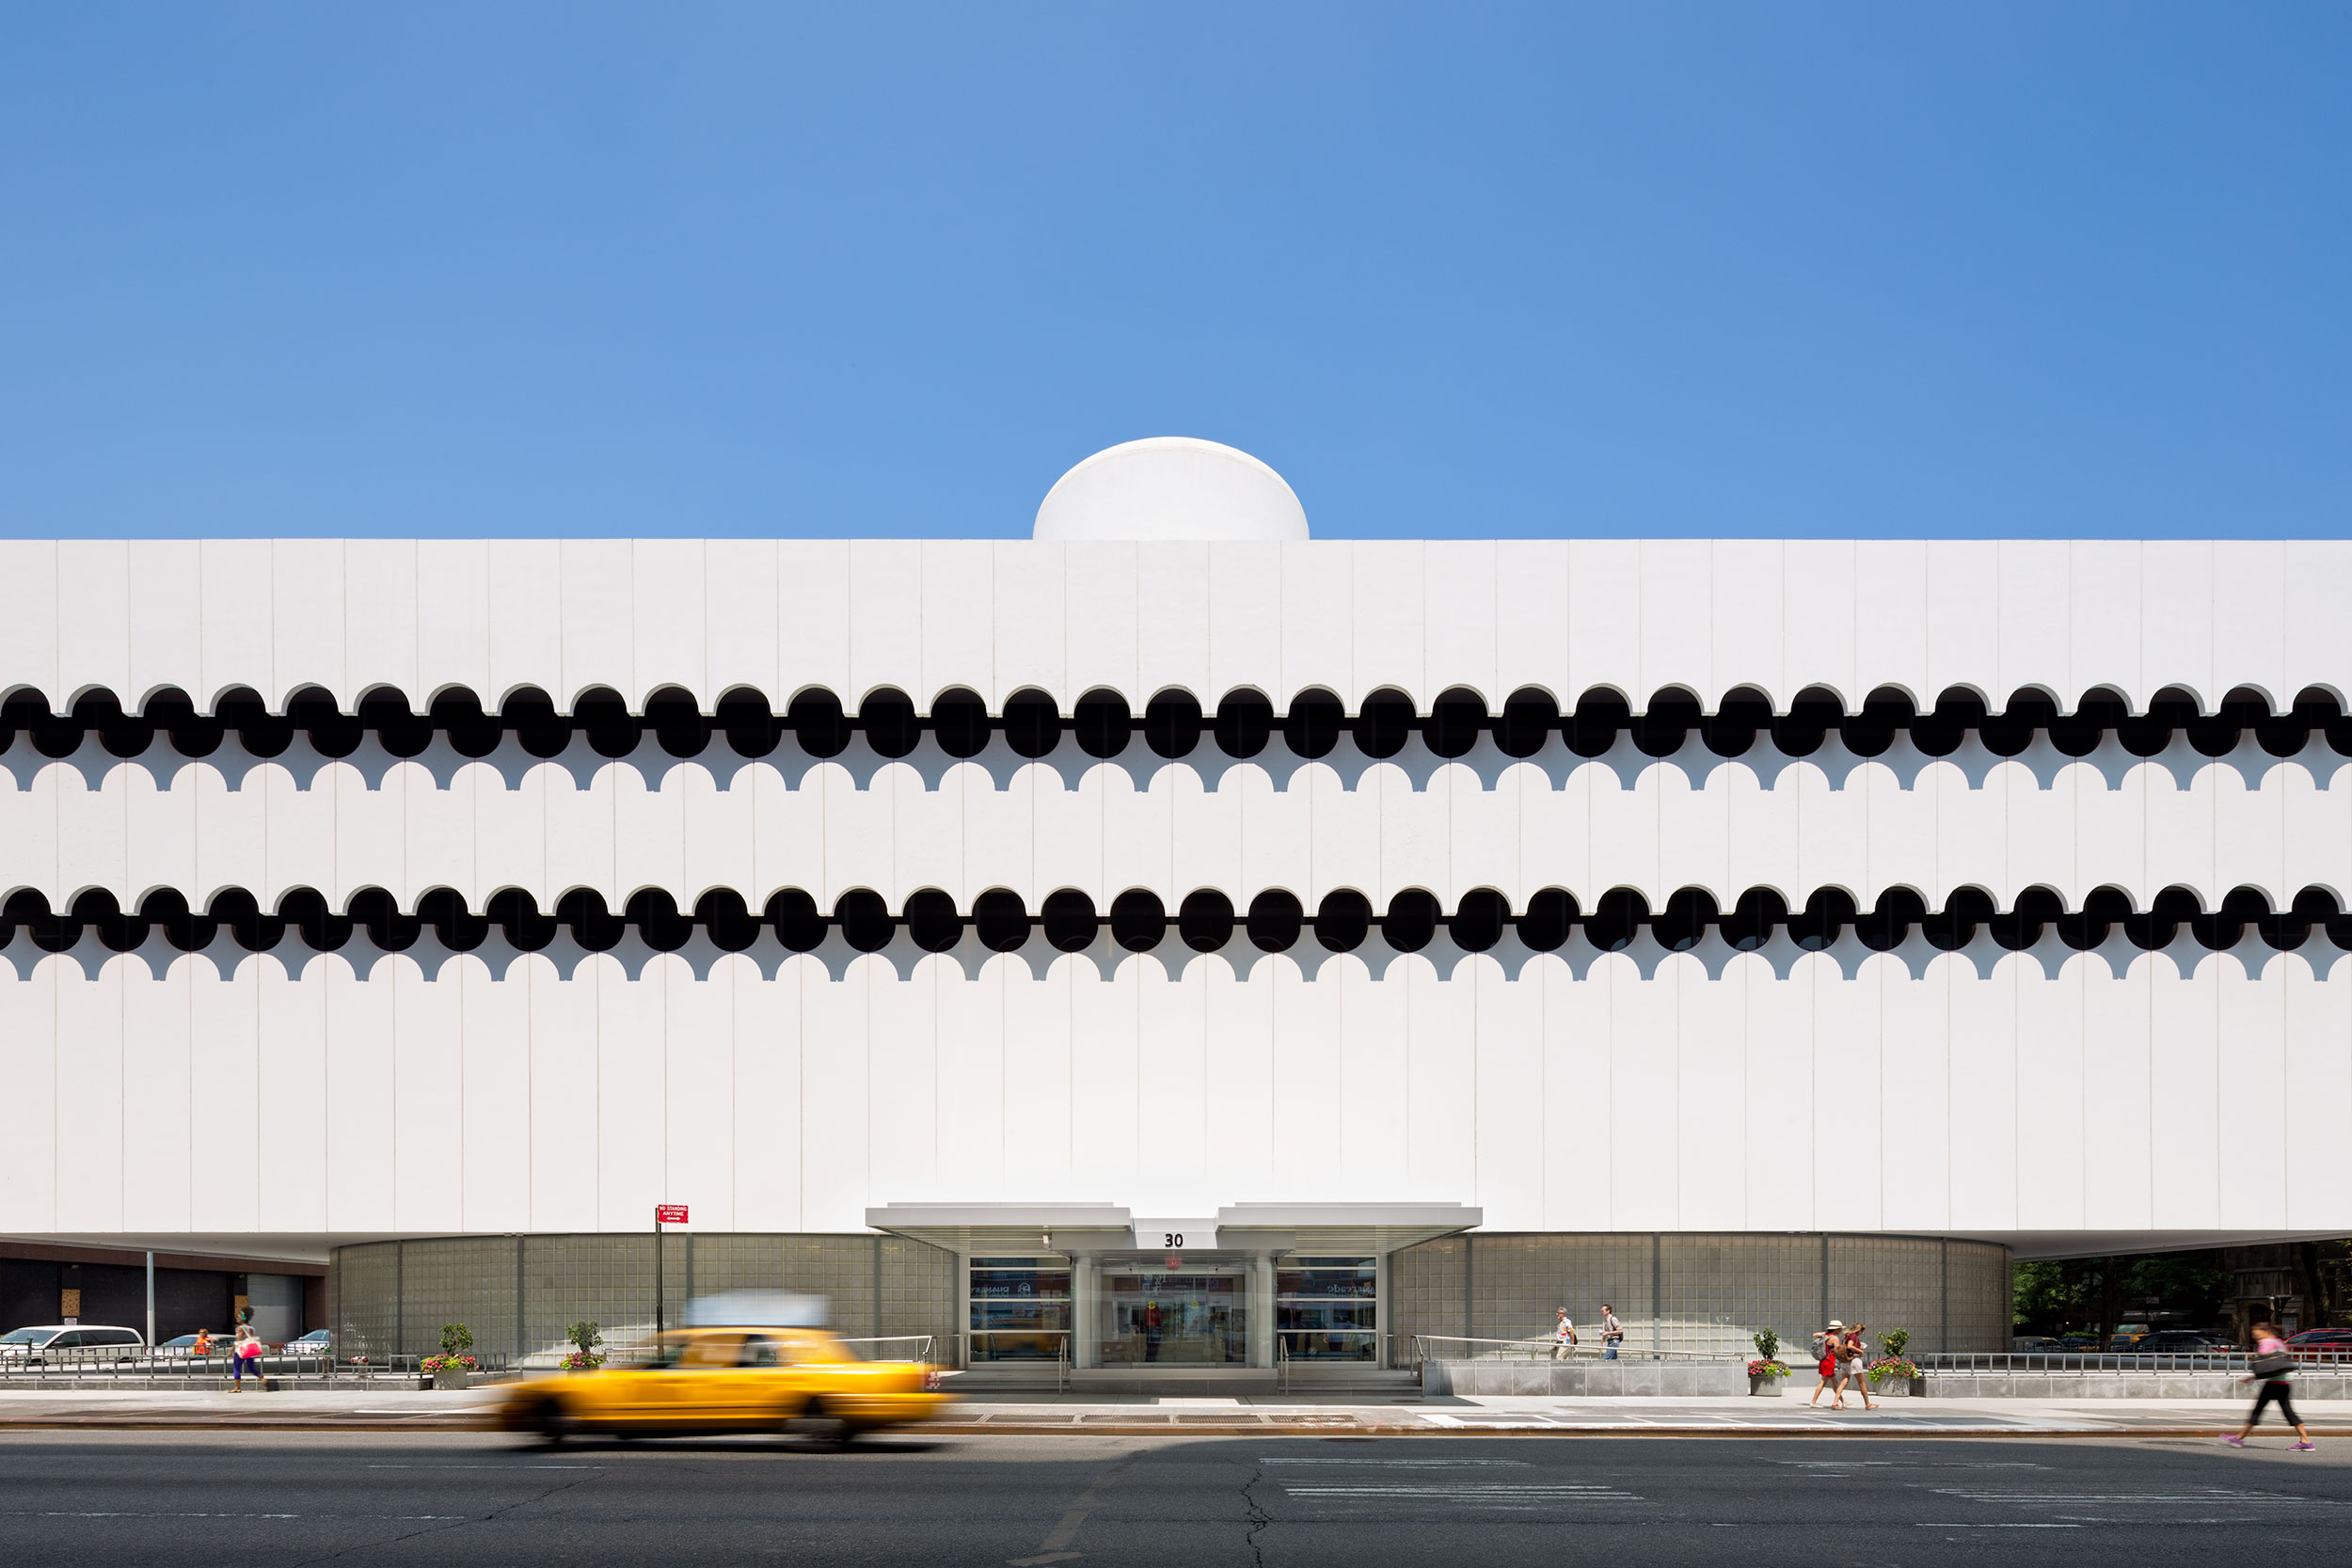 NYC Modernism, Minimal Abstract Design, Architecture